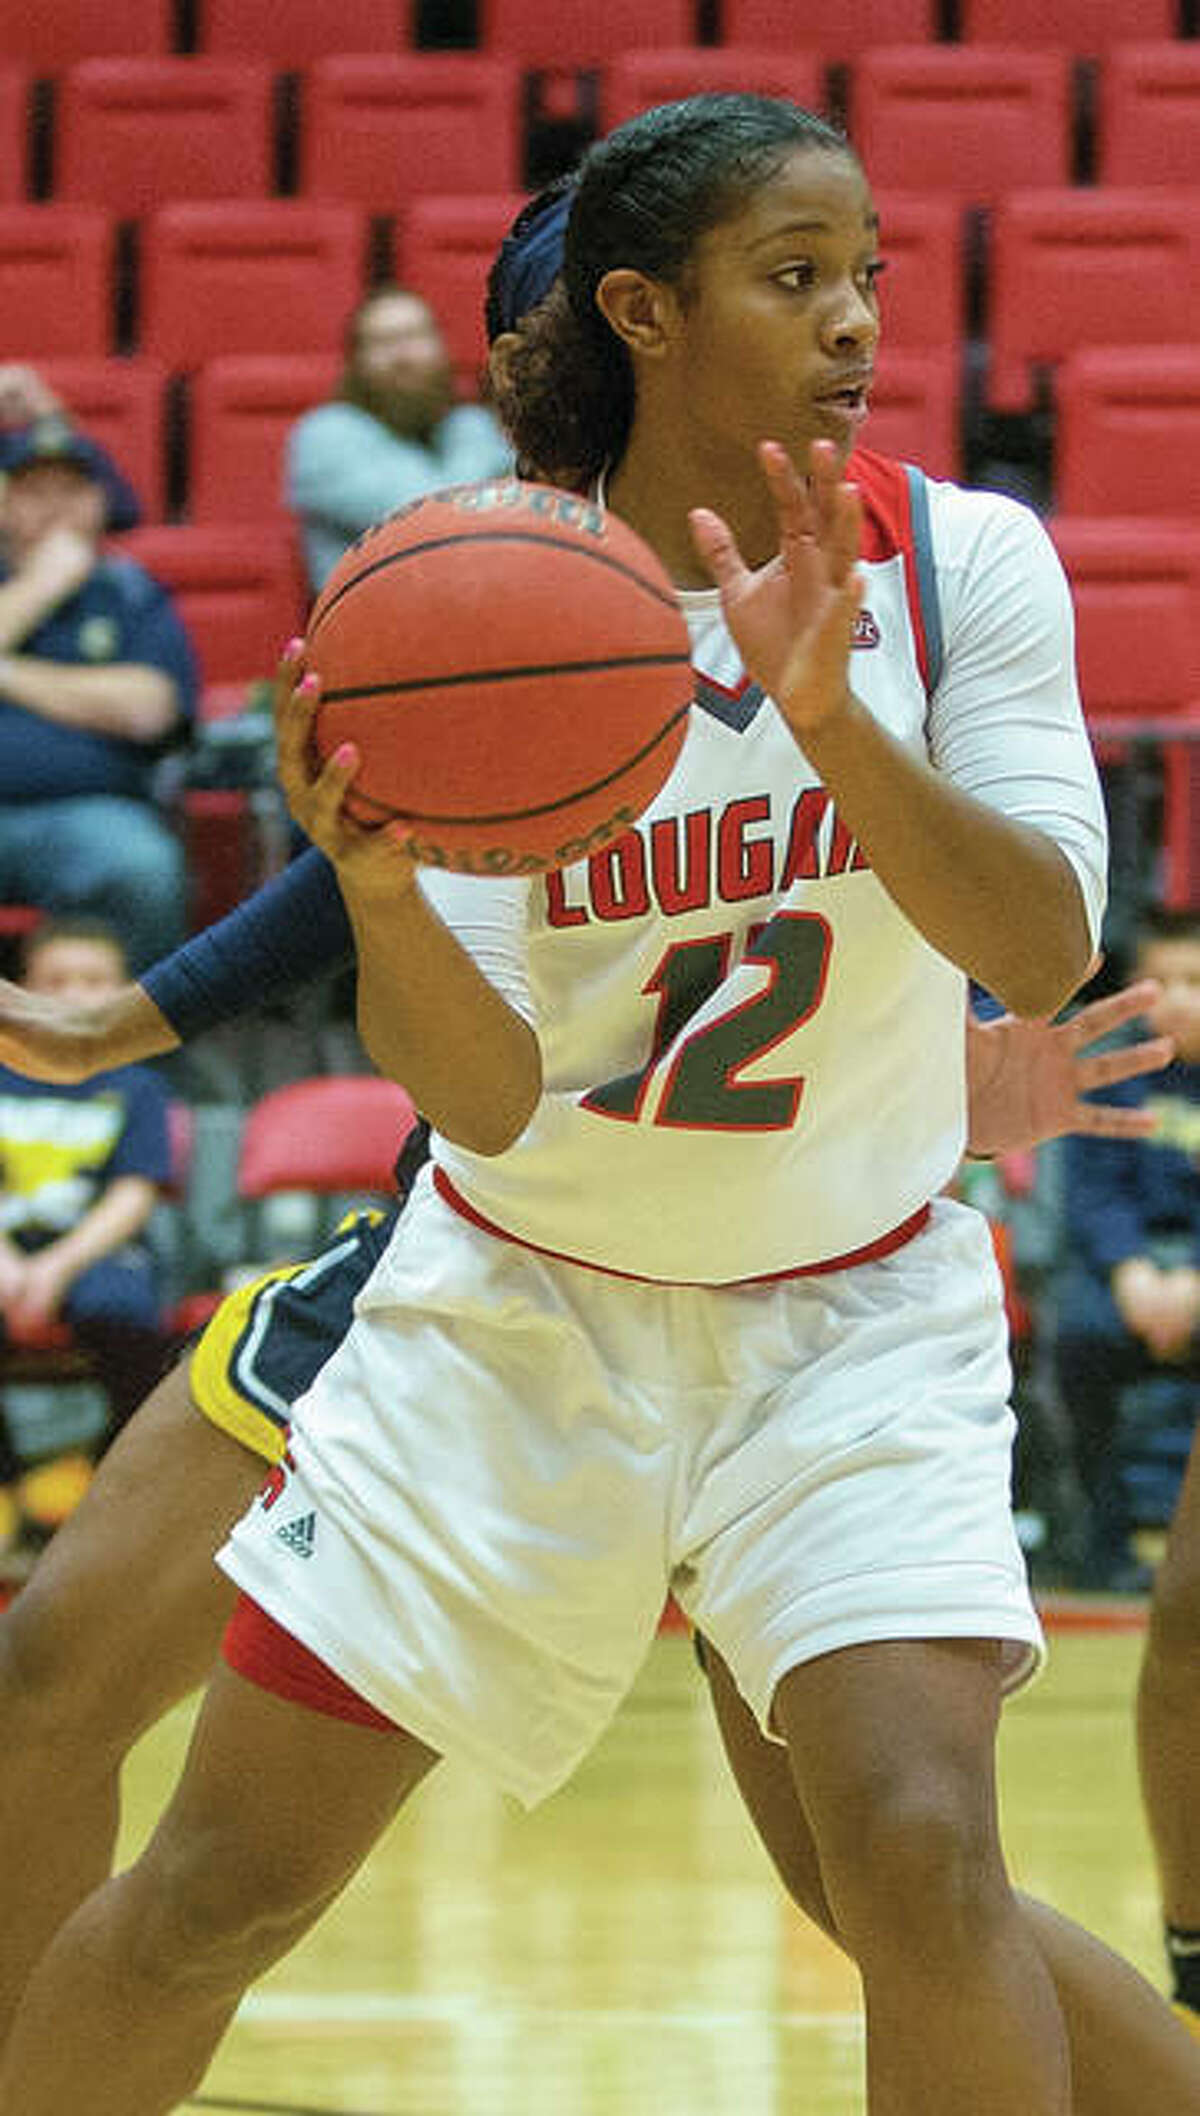 Edwardsville's Lauren White capped her 1,000-points career at SIUE on Wednesday night in the Cougars' WBI loss to Central Arkansas in Conway, Ark.